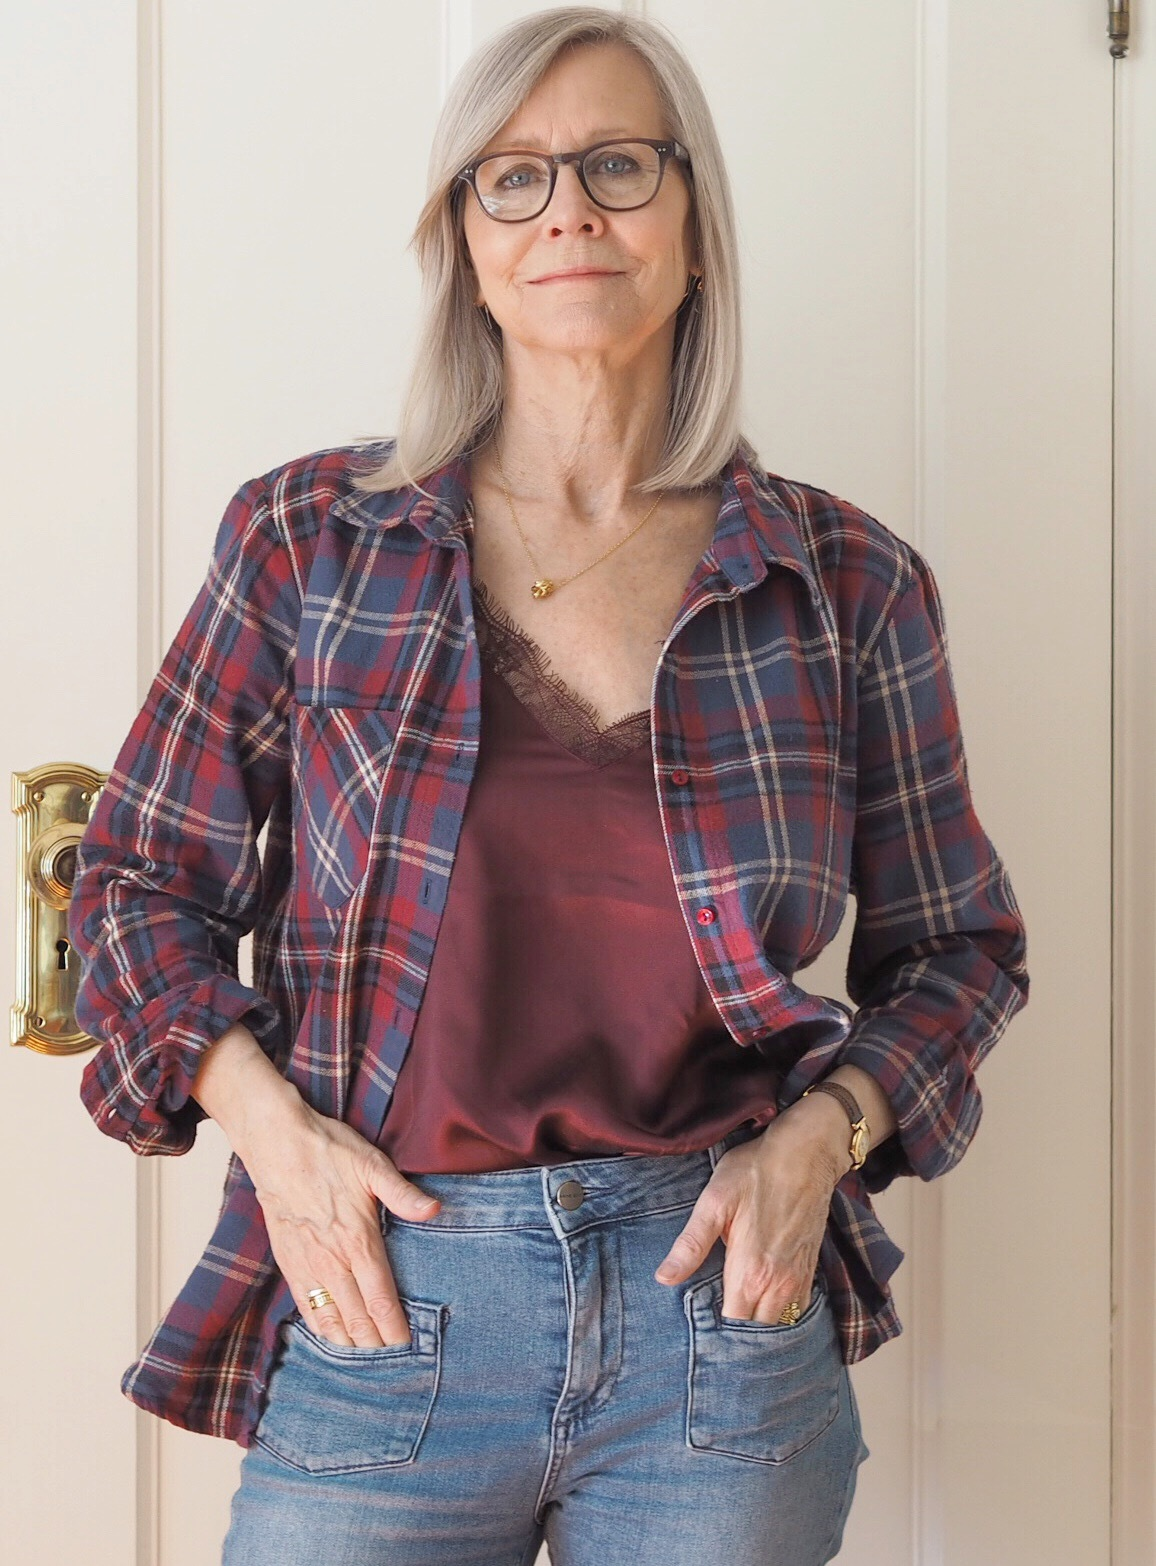 Anine Bing Plaid Shirt.jpg